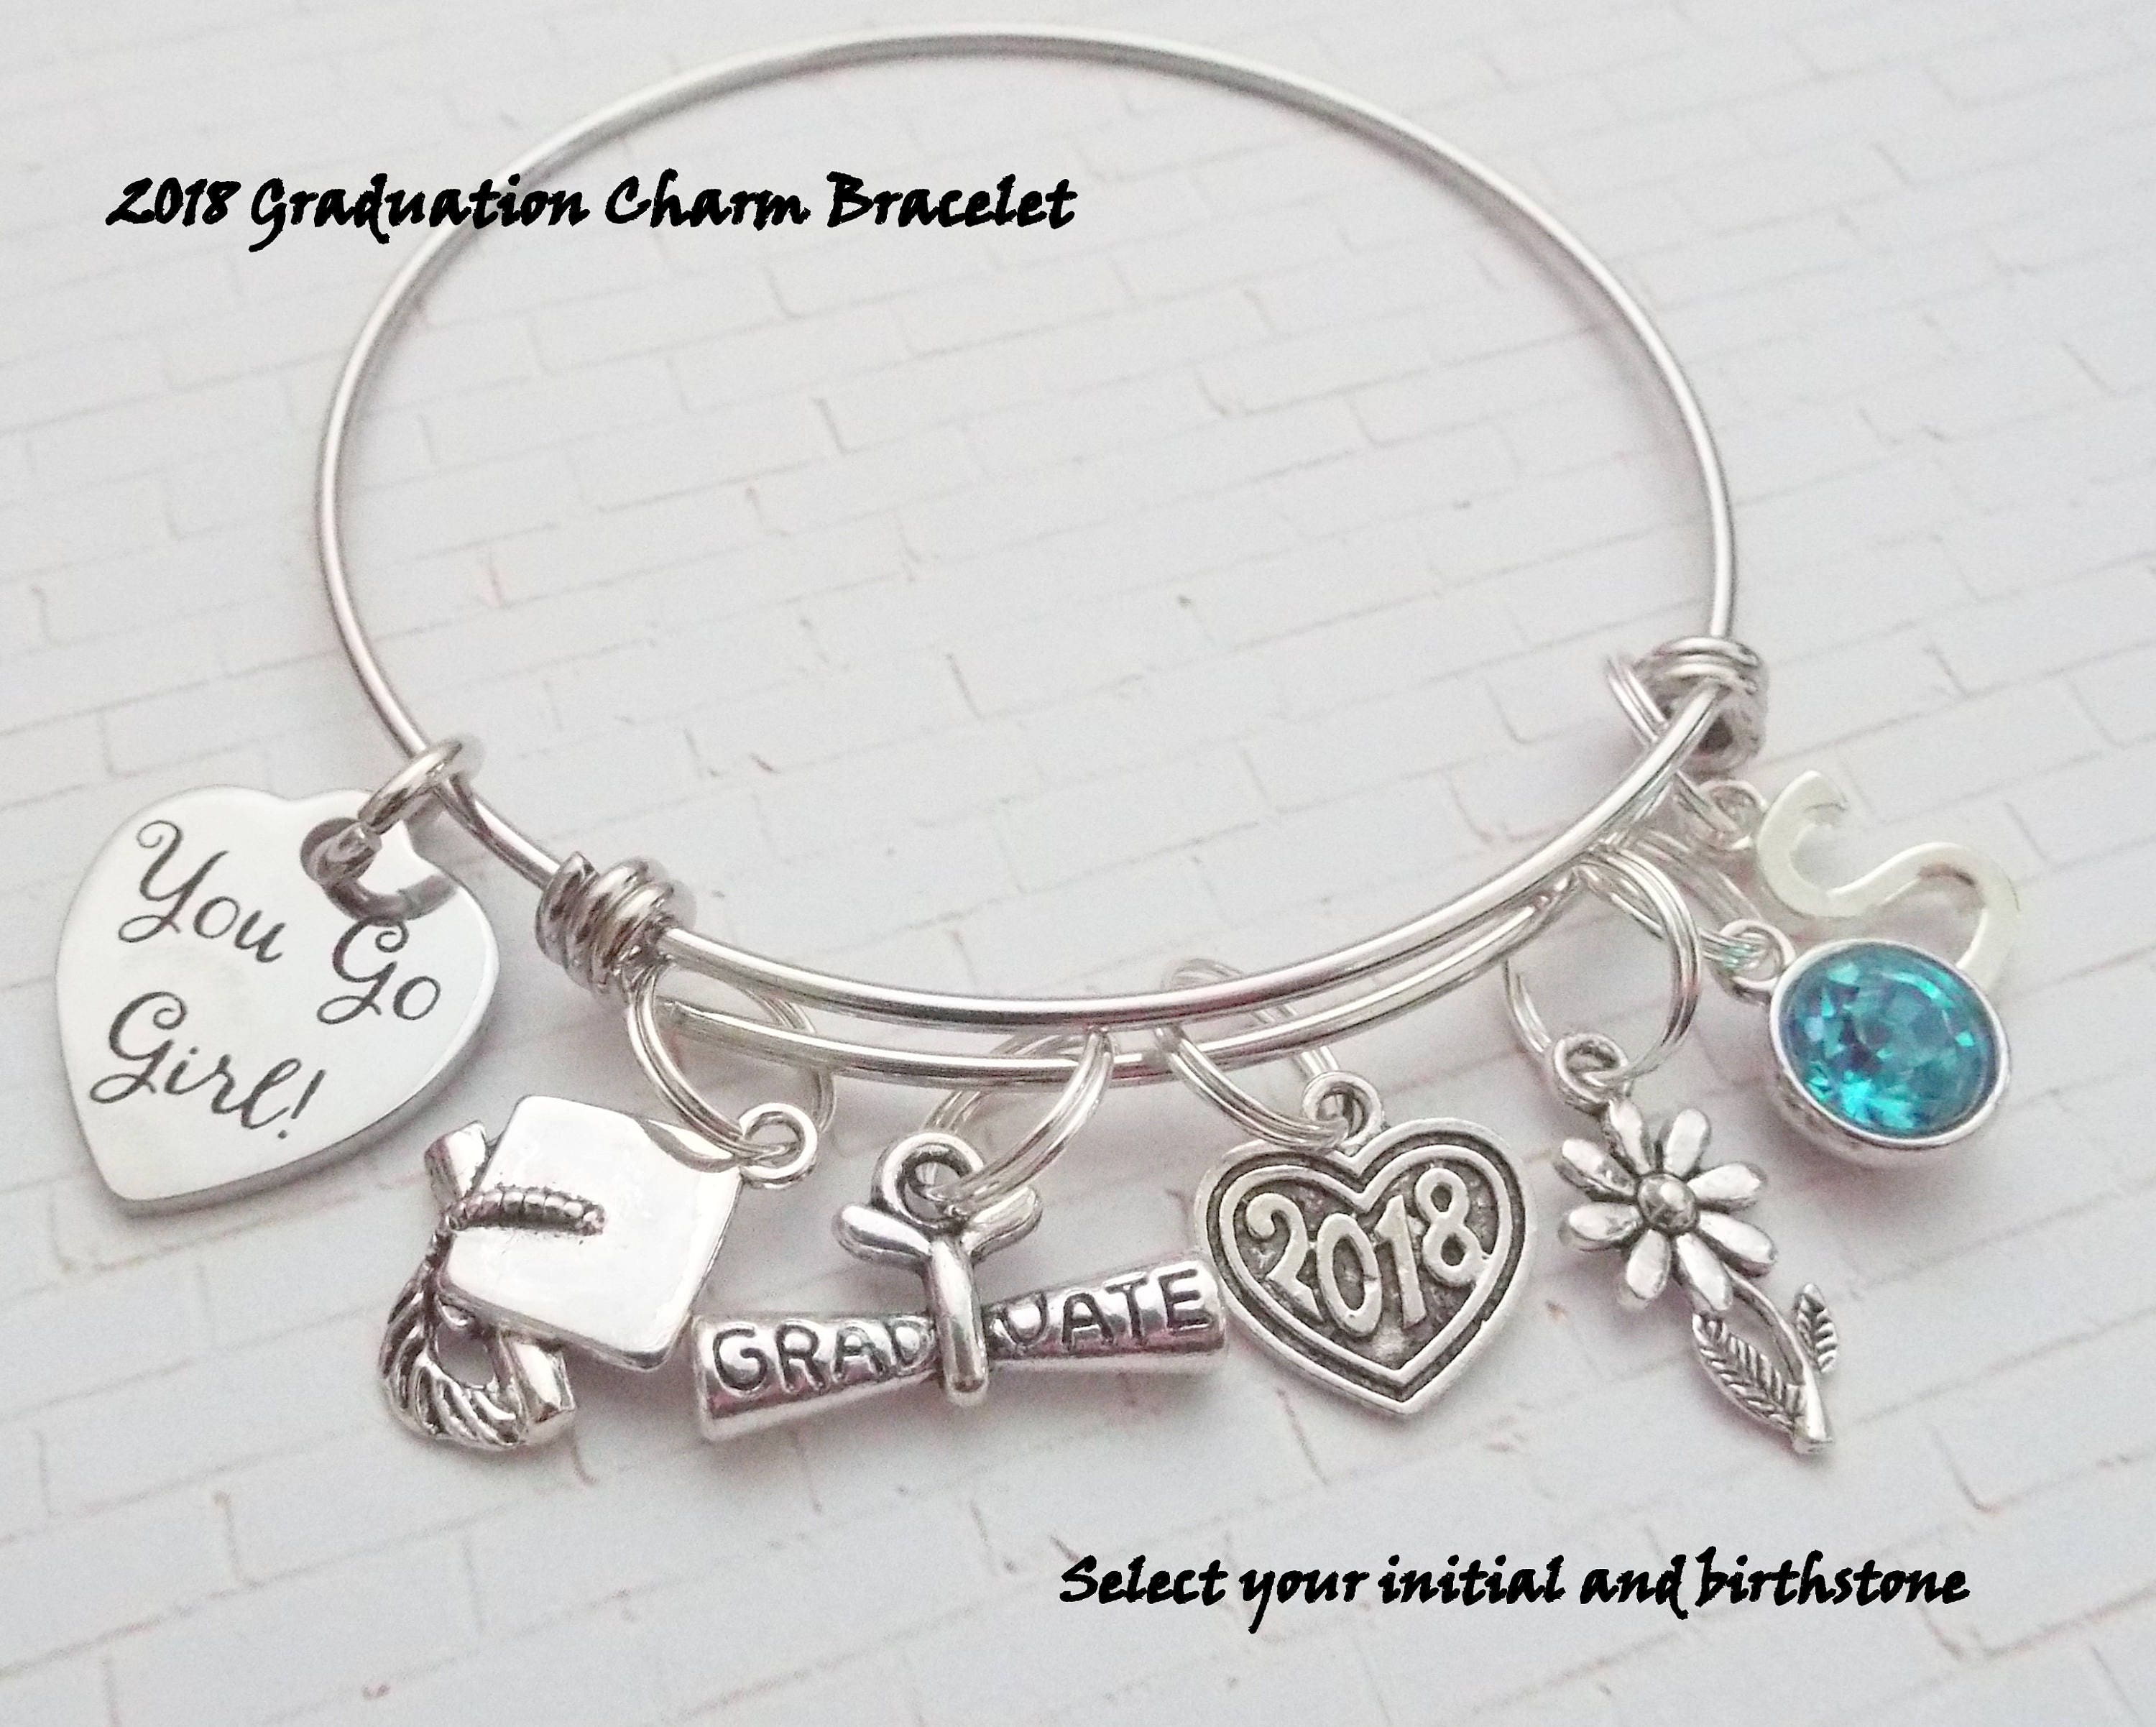 bracelet gift nurse pin rn graduation